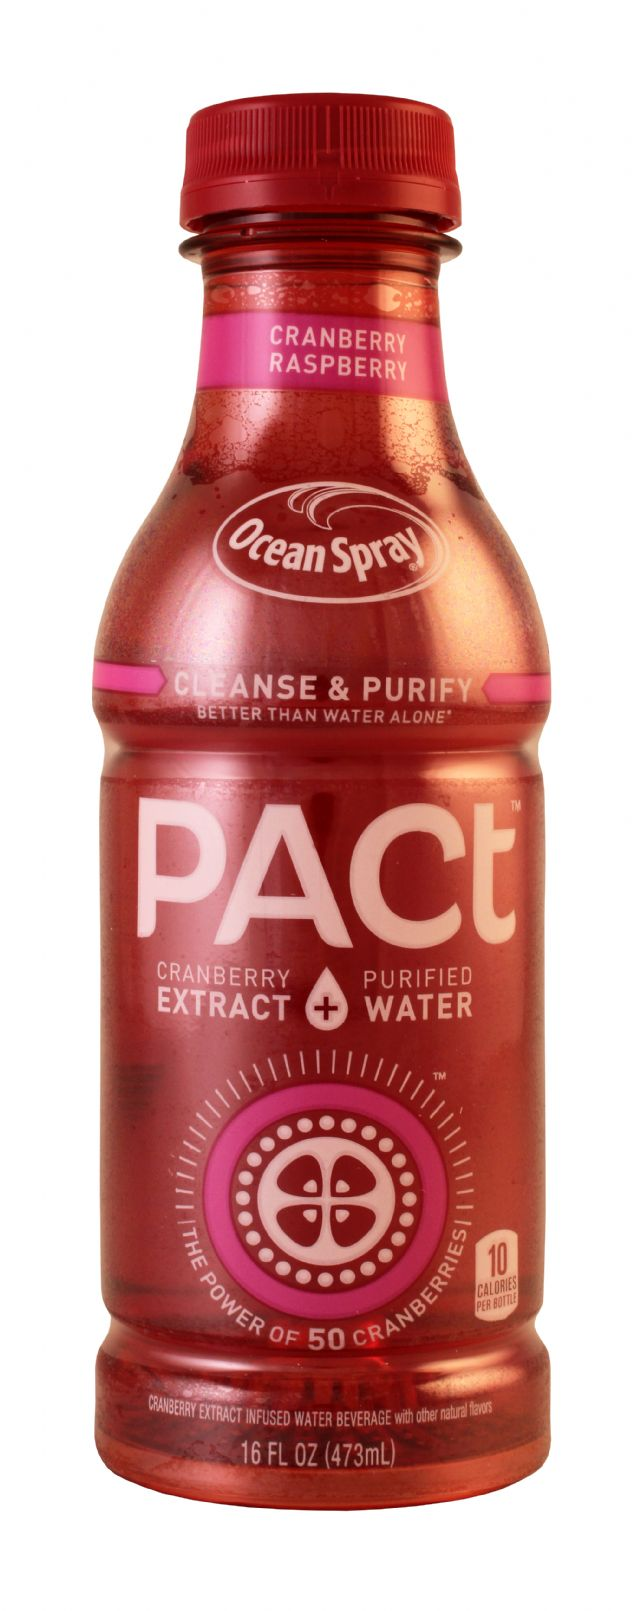 Ocean Spray PACt: OceanSpray PactRasp Front